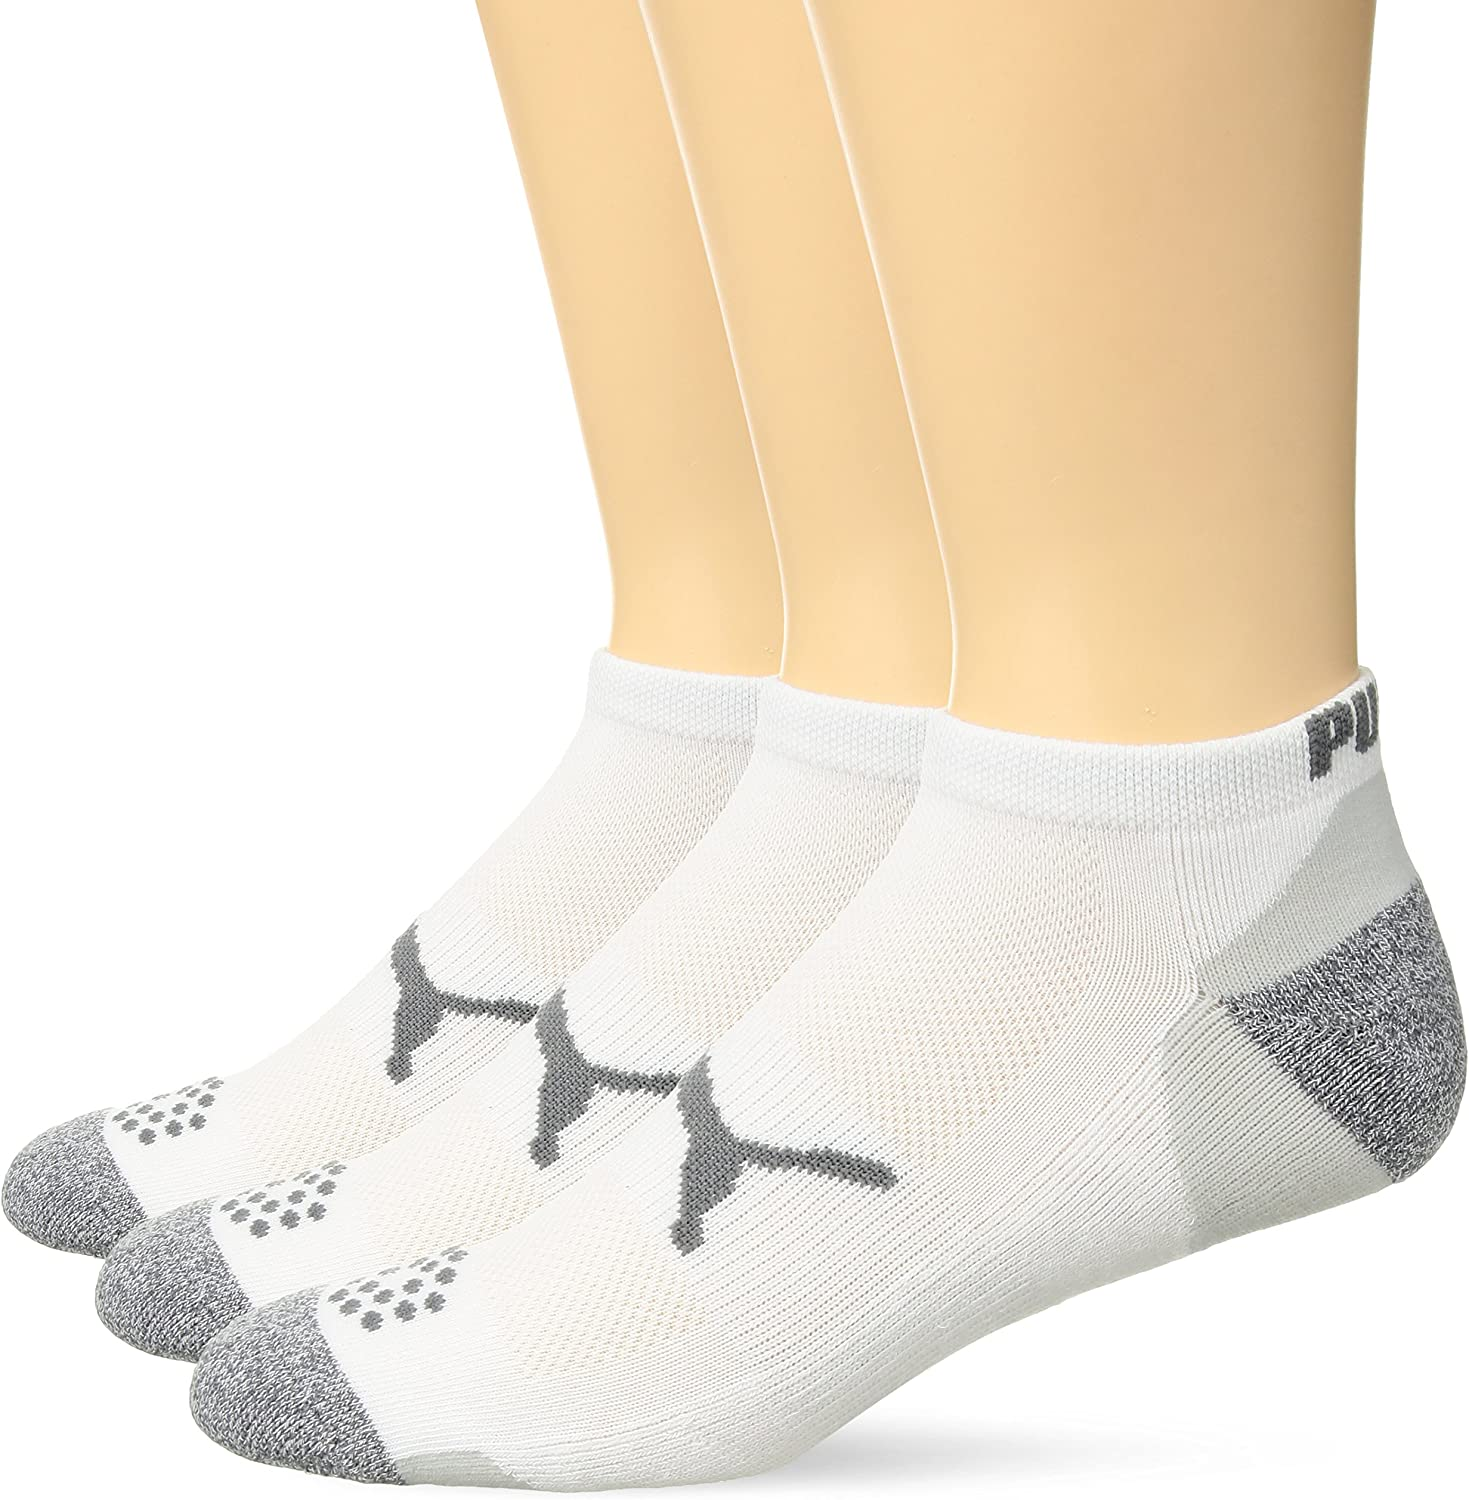 Puma Golf 2018 Men's Pounce Low Cut Sock (Pack of 3)